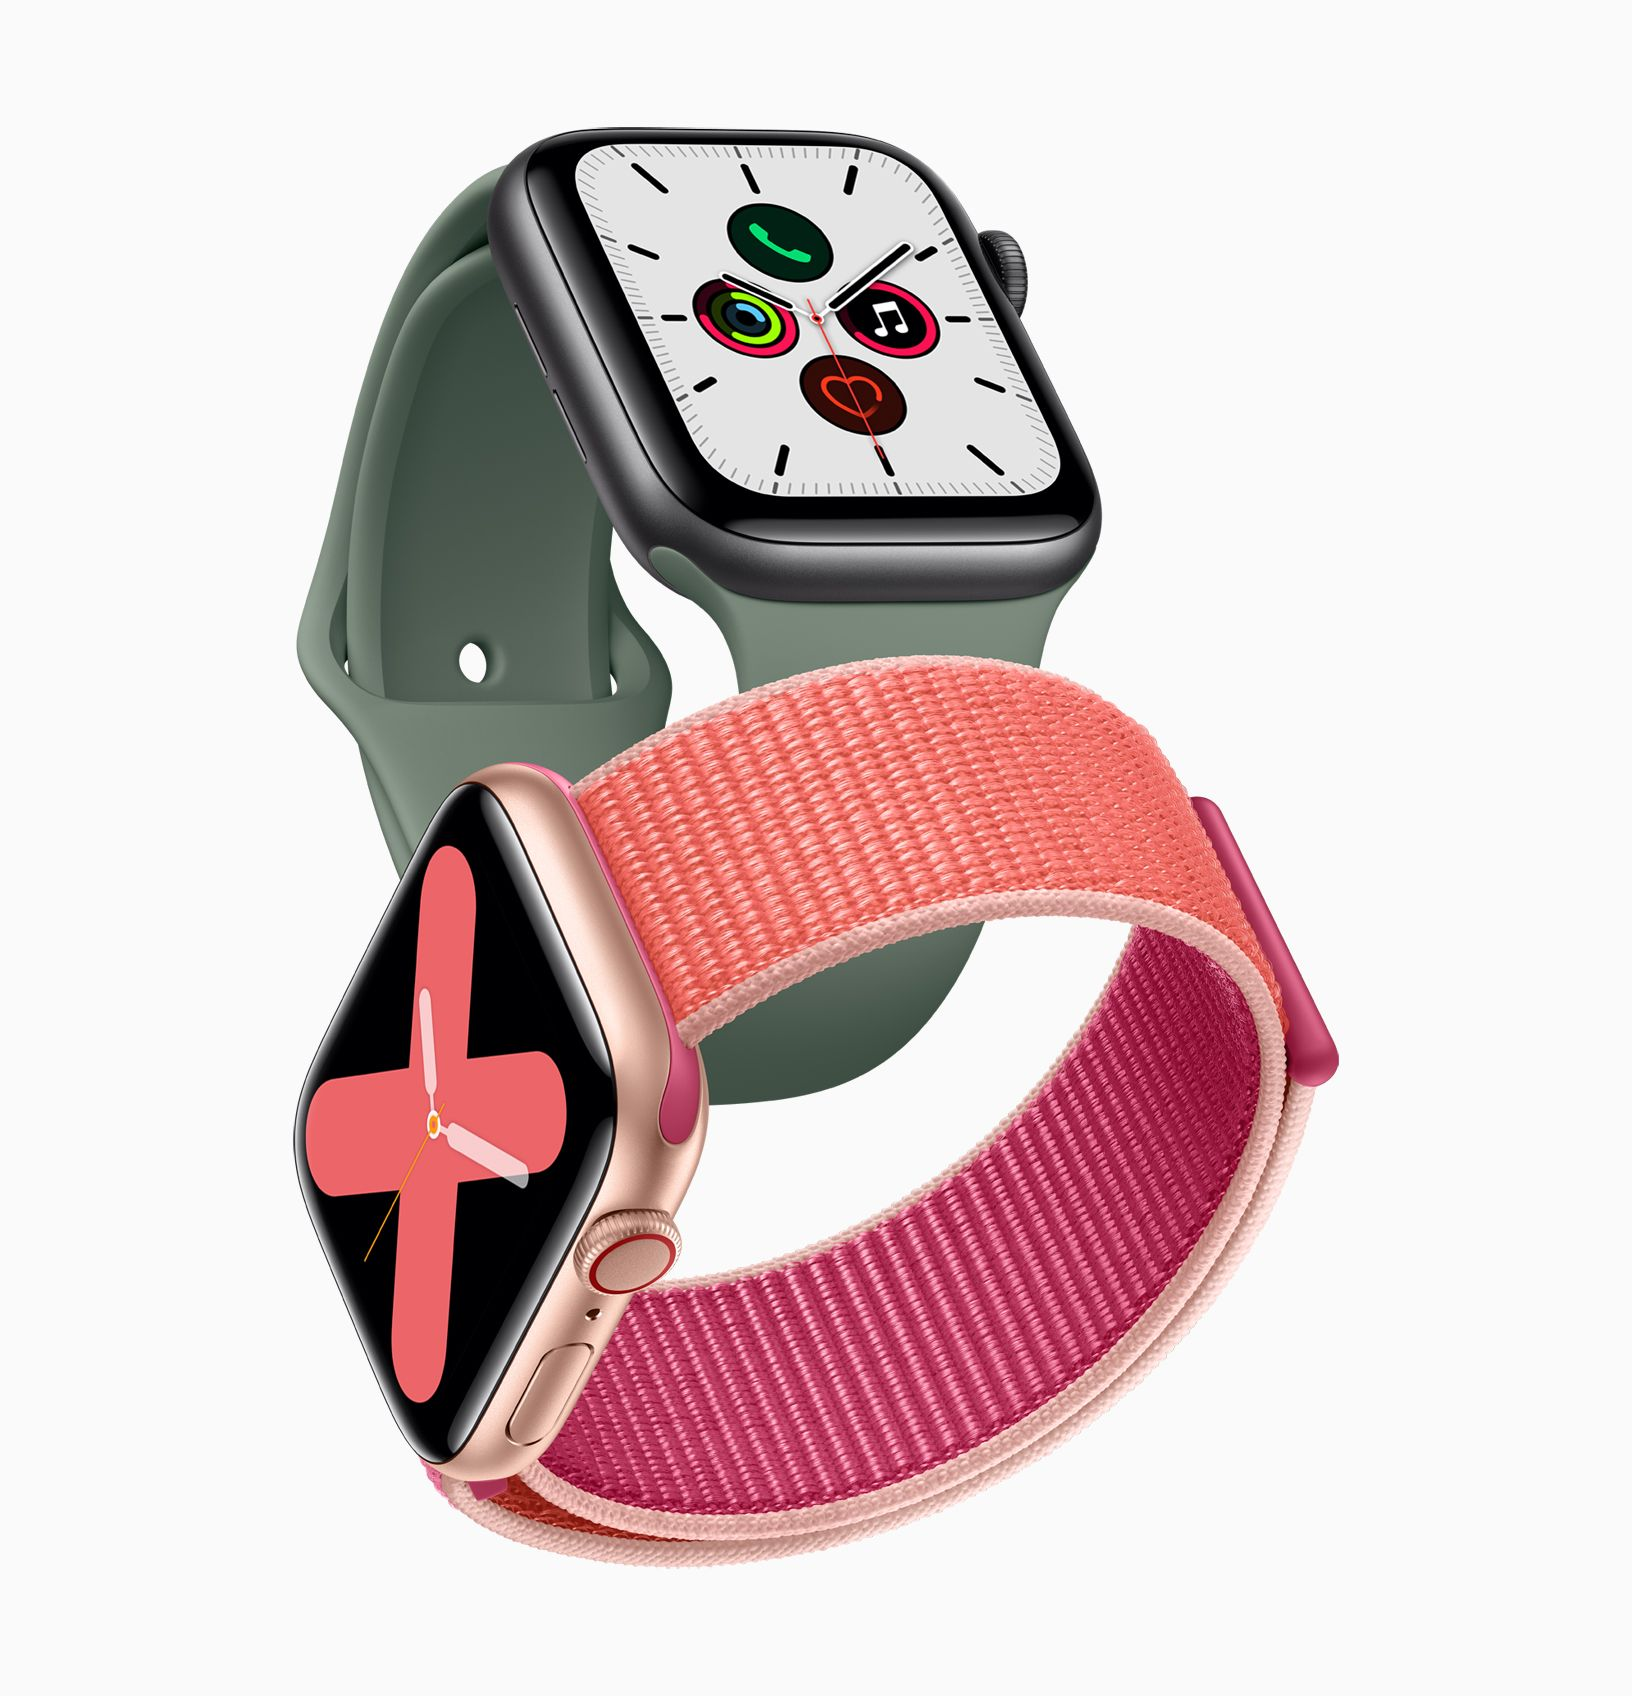 Here's How to Pre-order the Apple Watch Series 5